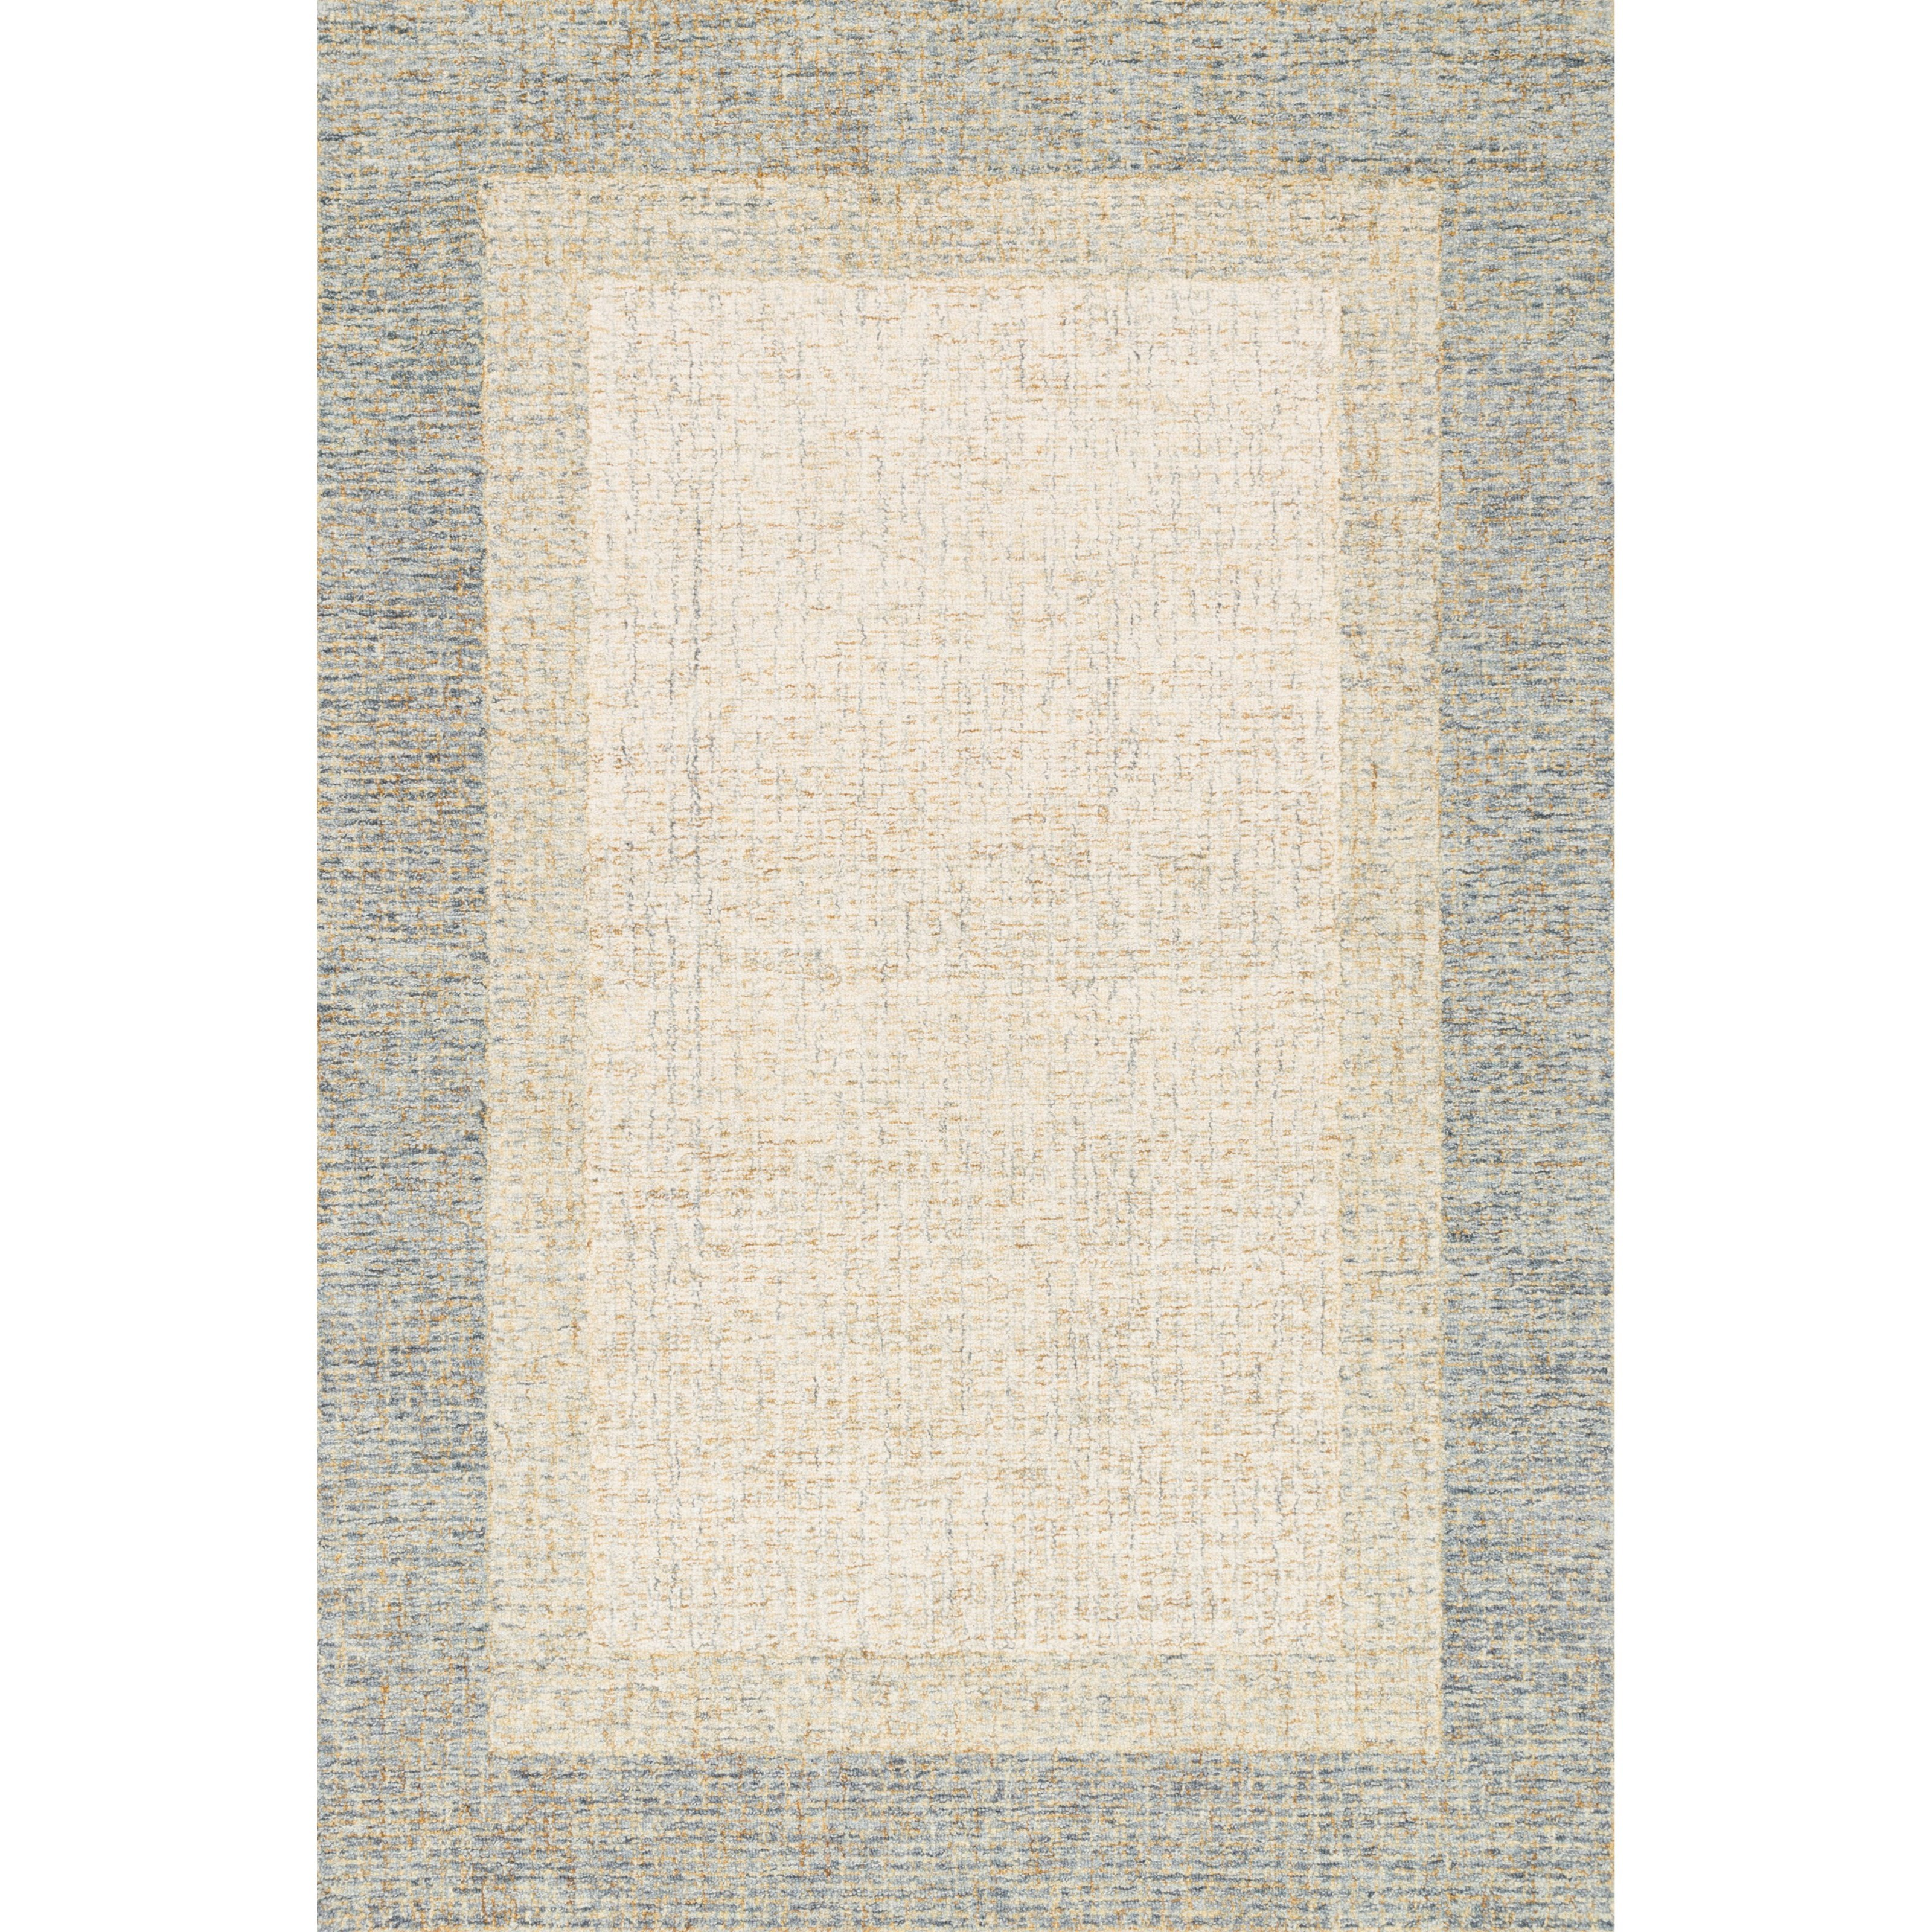 """Rosina 9'3"""" x 13' Sand Rug by Loloi Rugs at Virginia Furniture Market"""